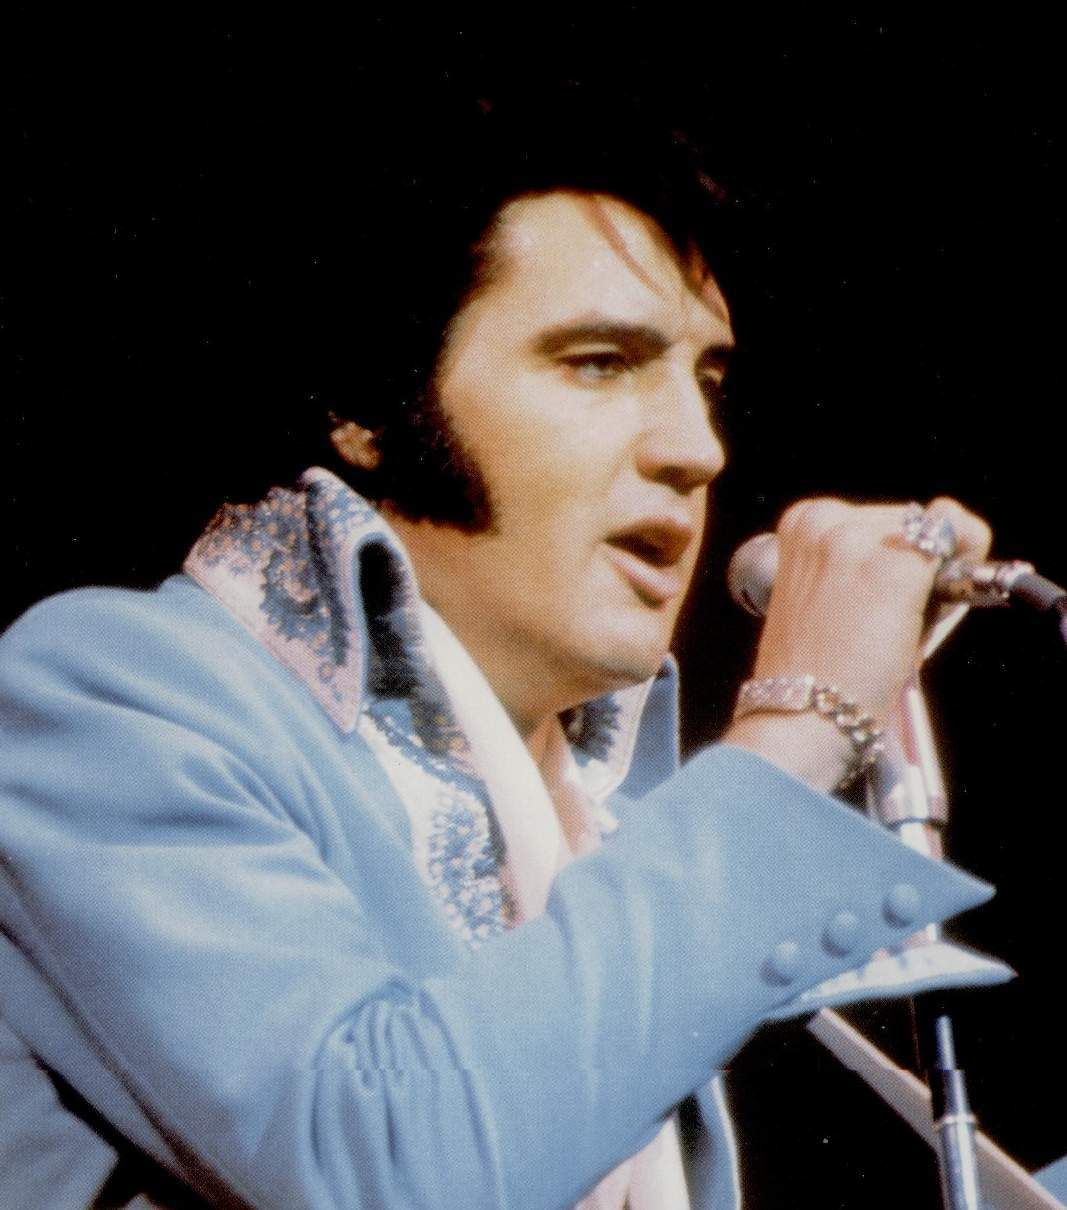 Elvis on stage at the Las Vegas Hilton in january or february 1970.